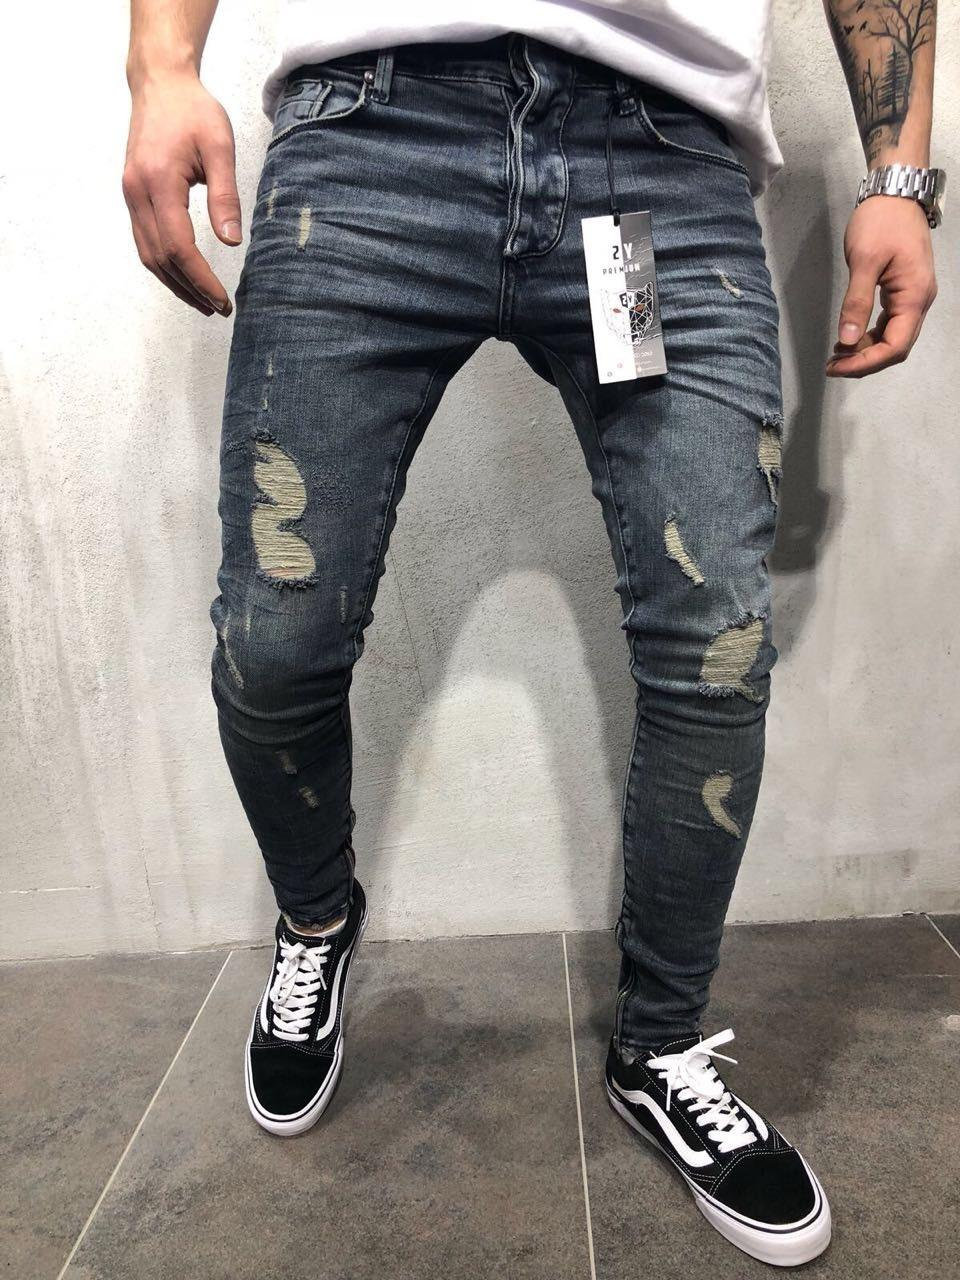 2019 New Dropping Newest Skinny Jeans Men Fashion Solid Hole Casual Clothes Casual Streetwear Mens Jeans